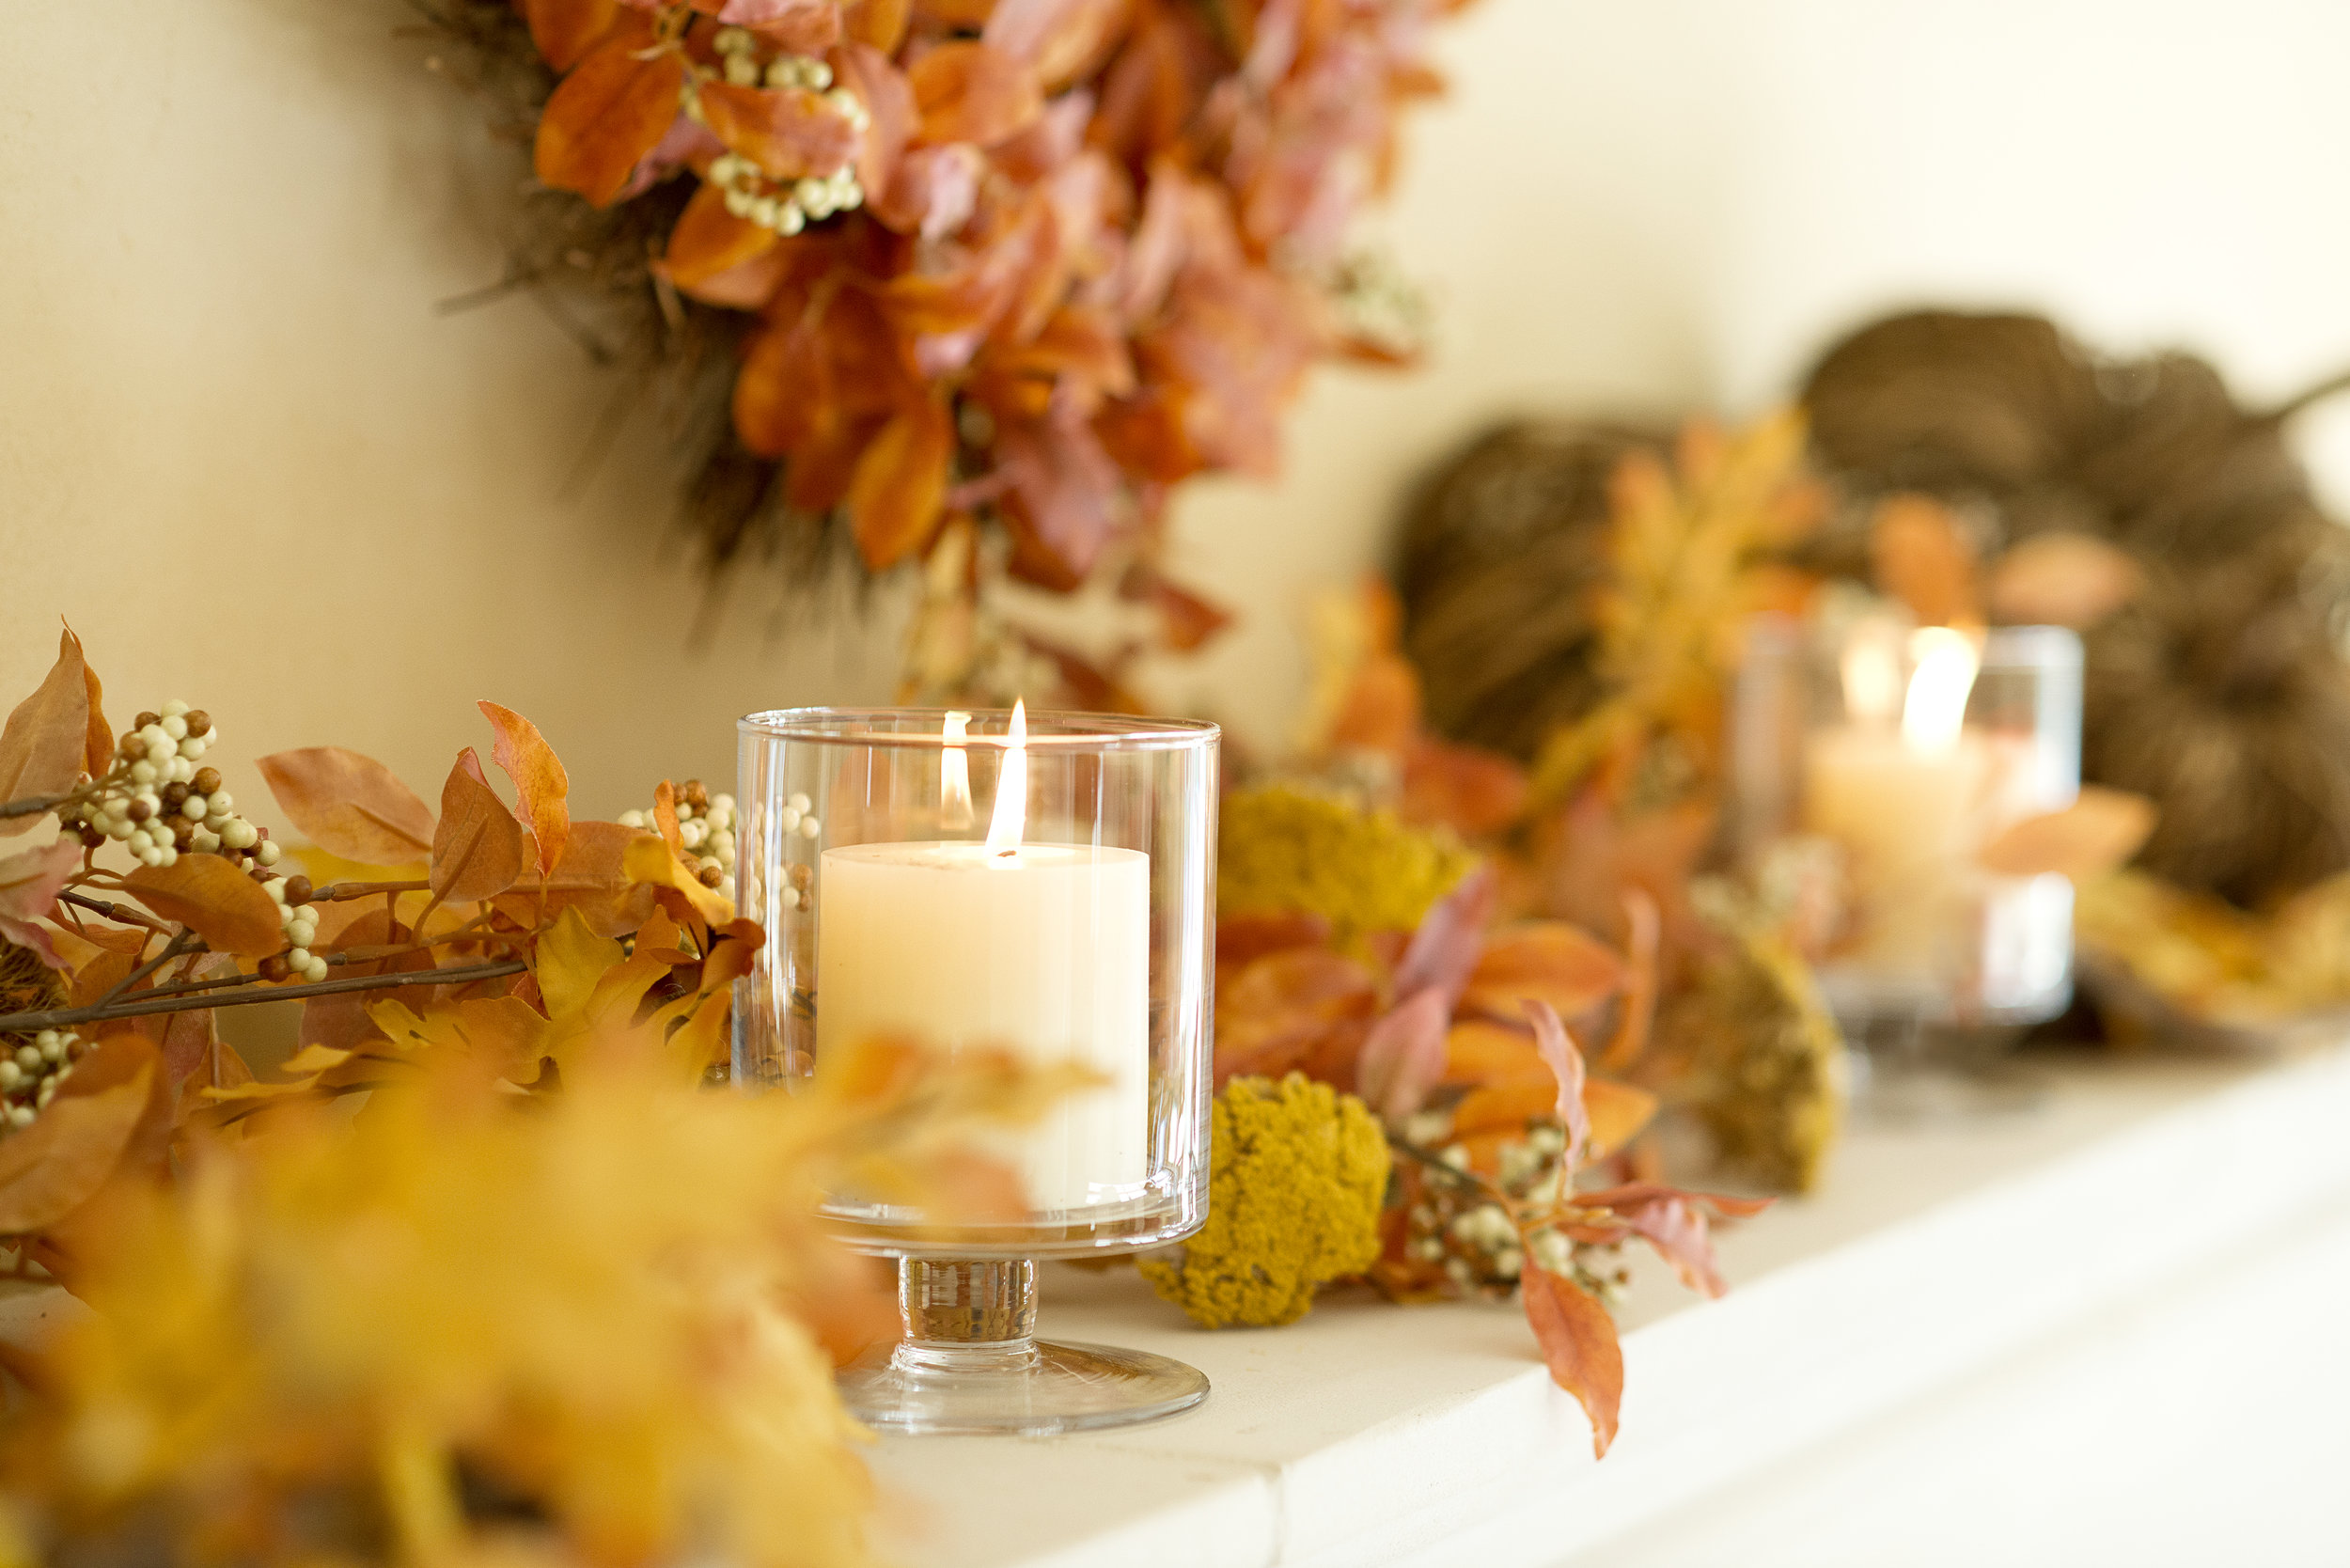 Fireplace Styled 3 Ways! My Splendid Living partnered with Crate & Barrel for this fall fireplace mantel inspiration!